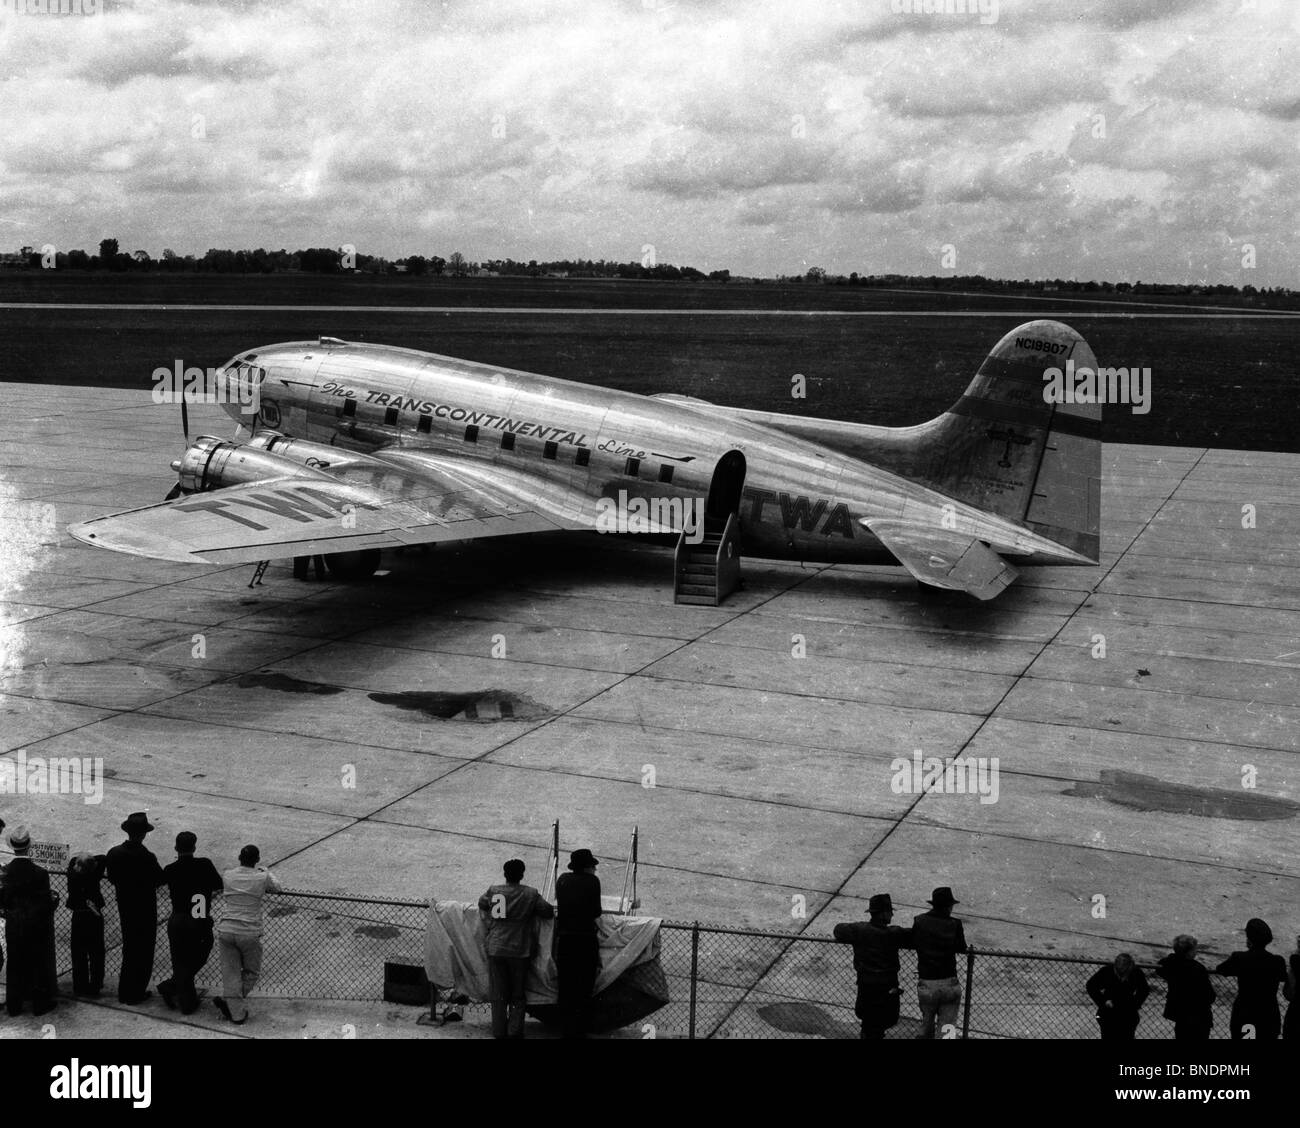 High angle view of an airplane, 1940 - Stock Image